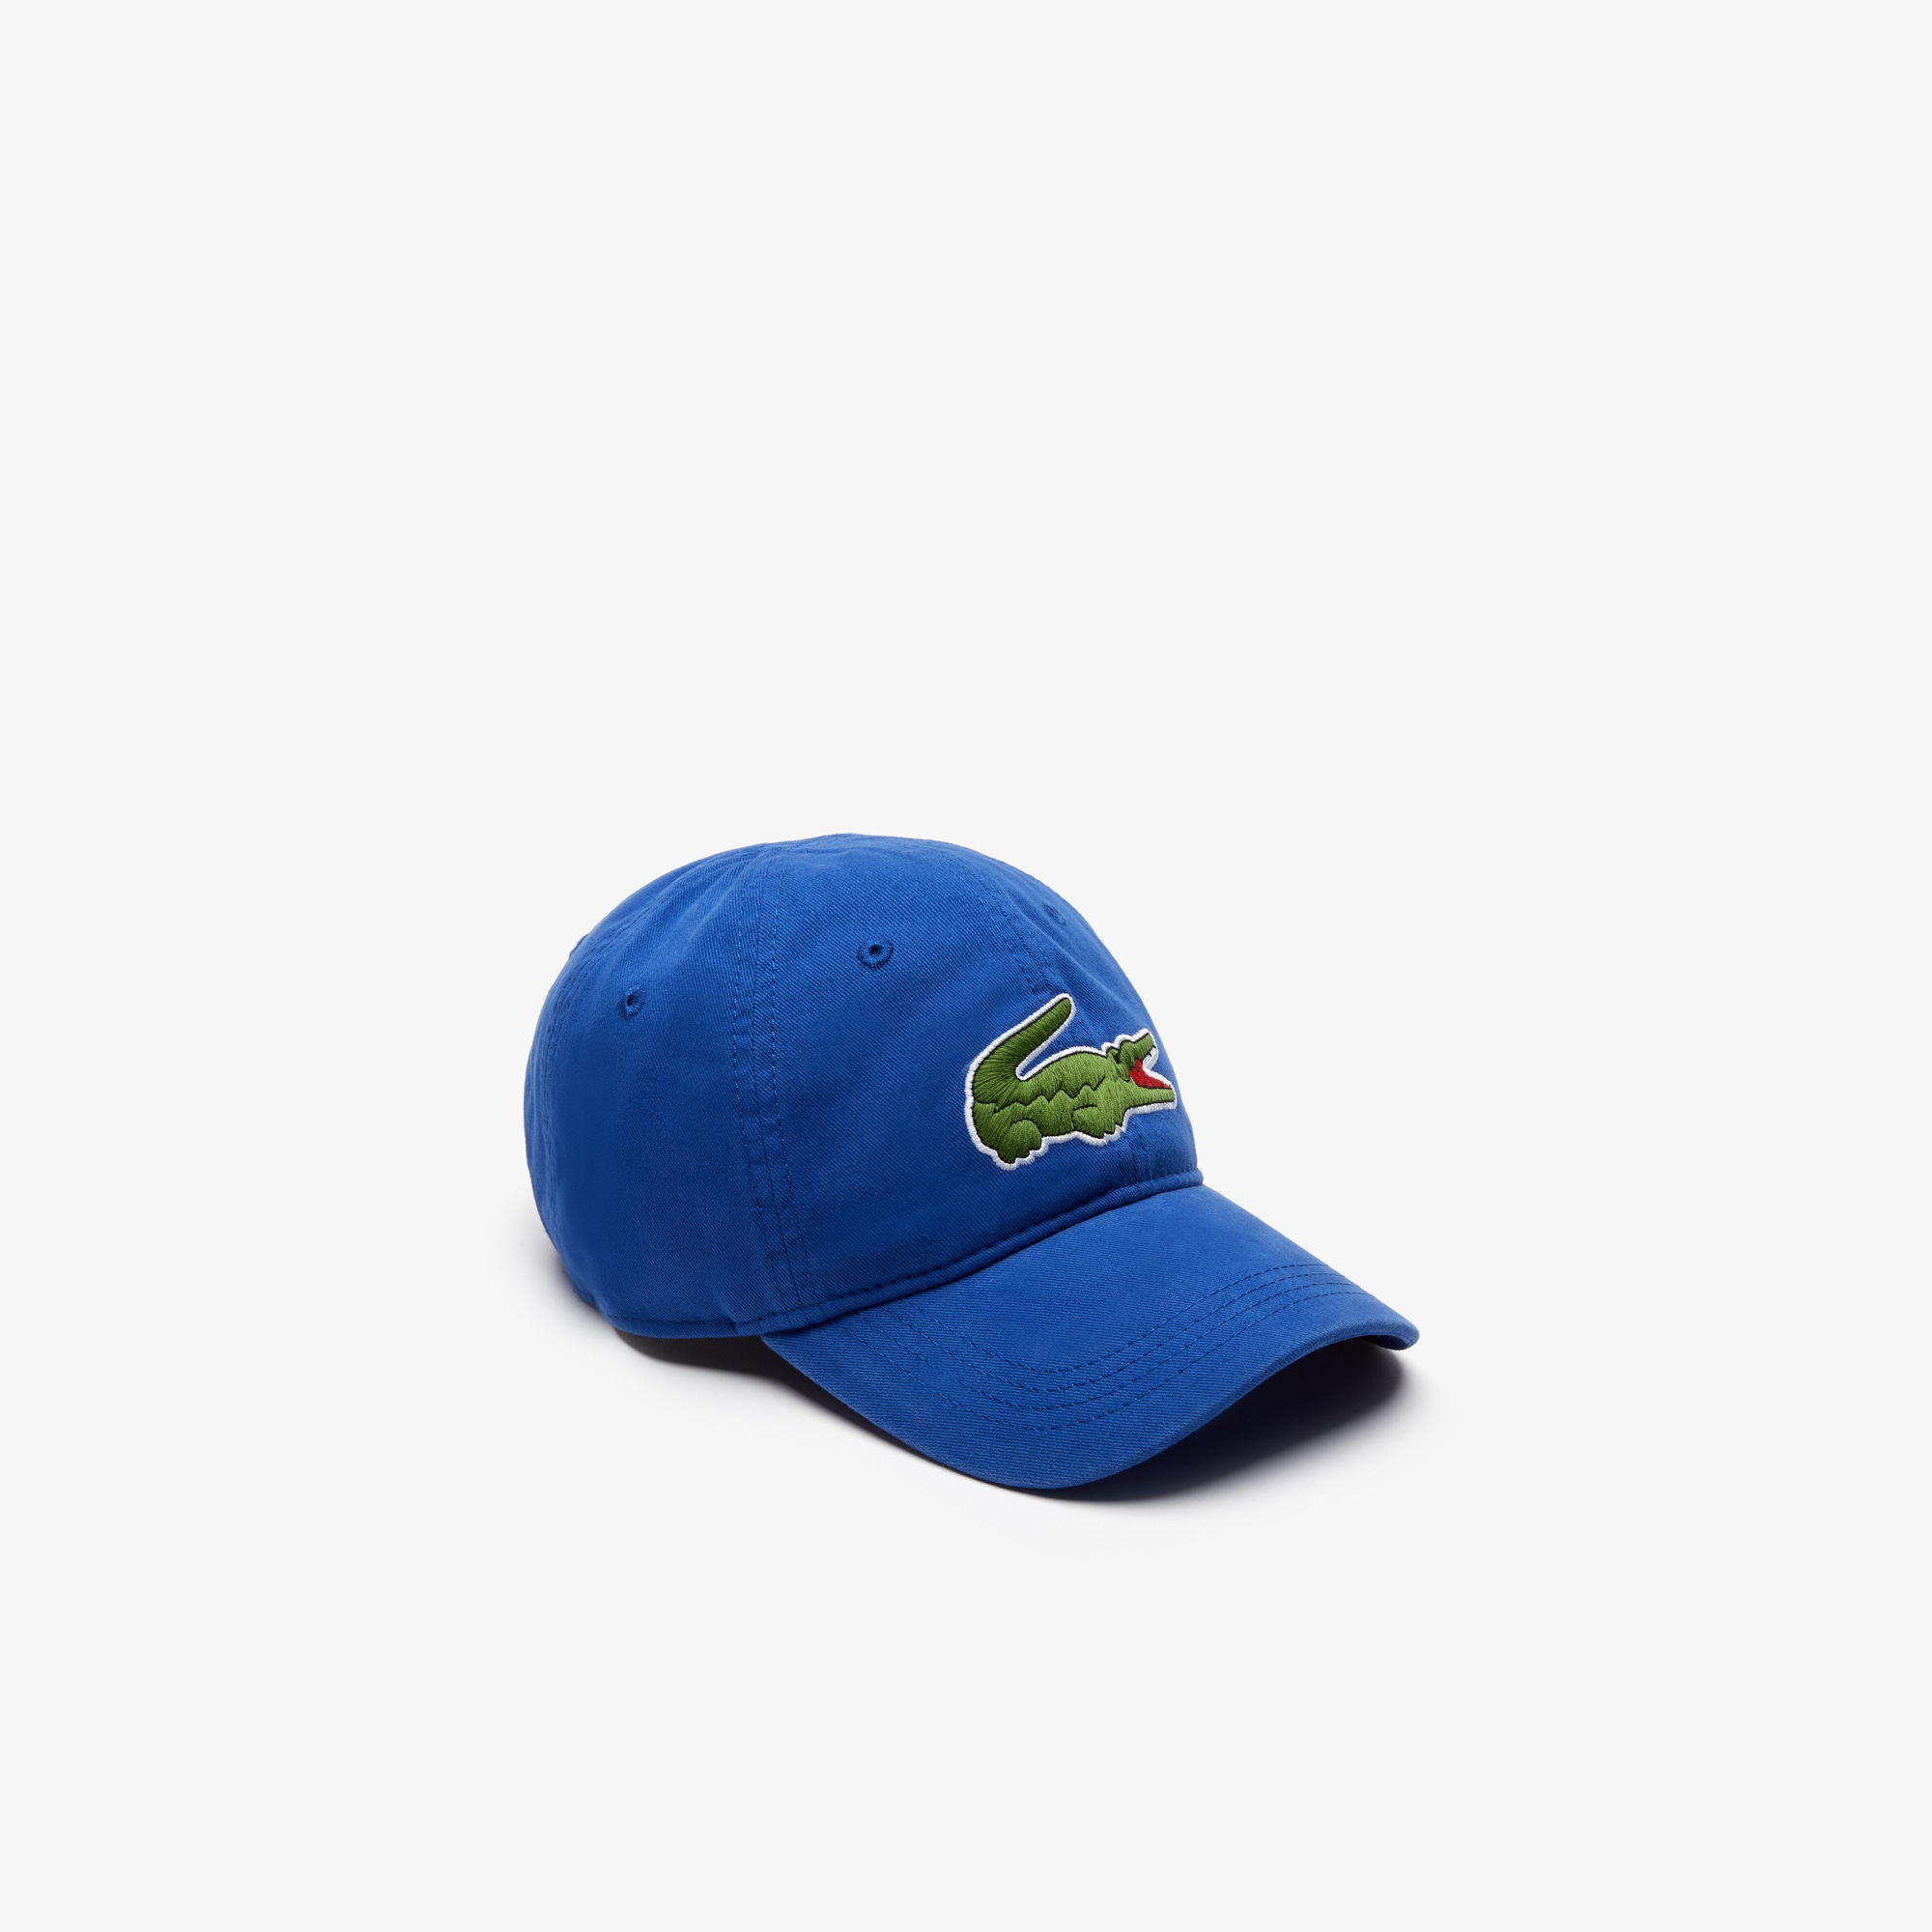 1a565d7a Caps & Hats | Men's Accessories | LACOSTE